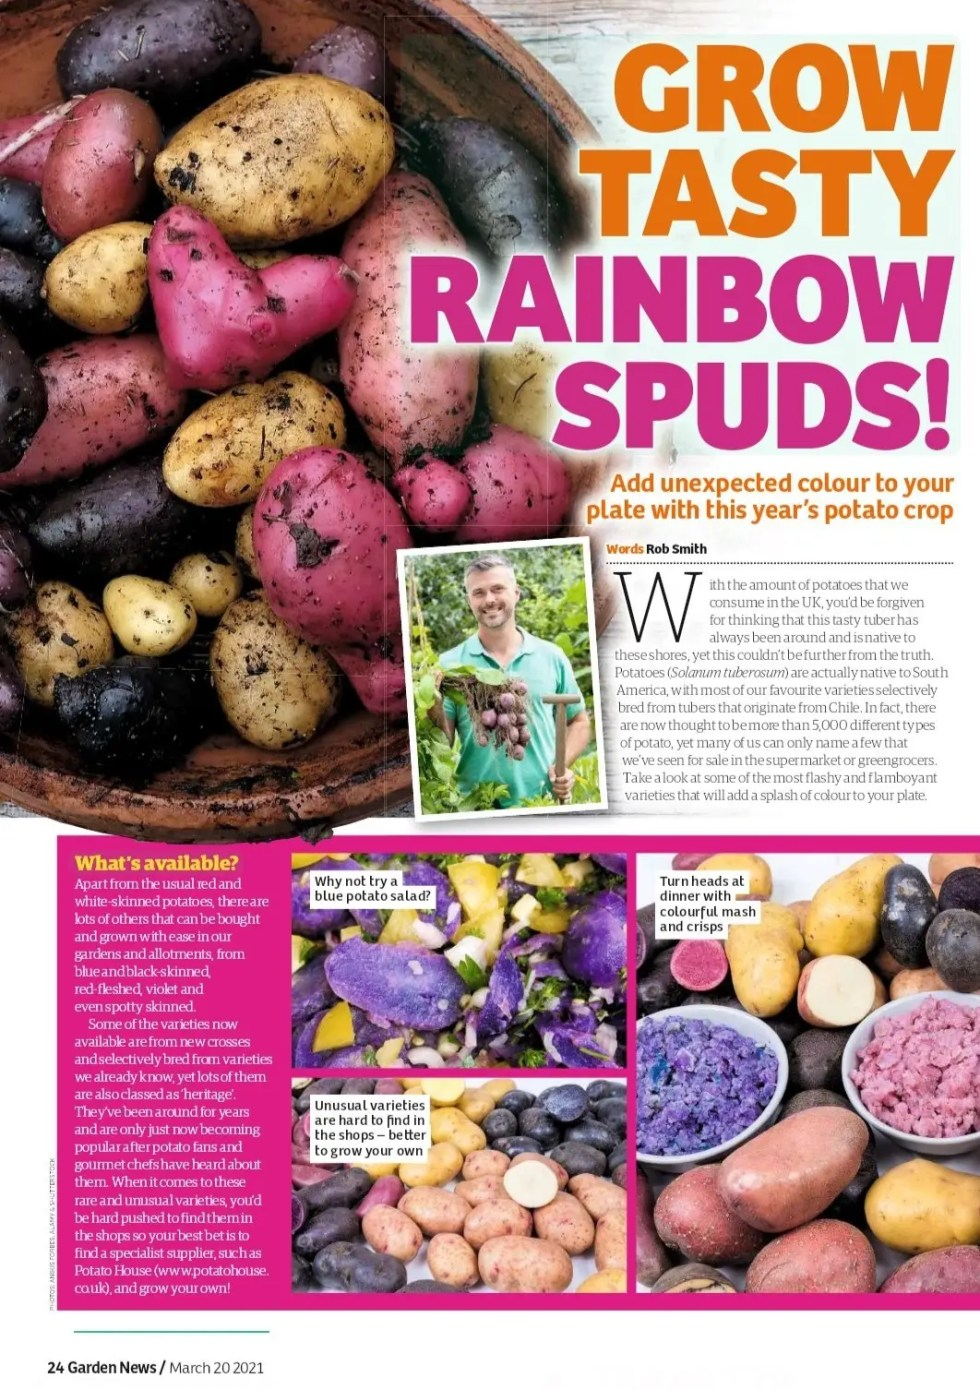 Grow Tasty Rainbow Spuds